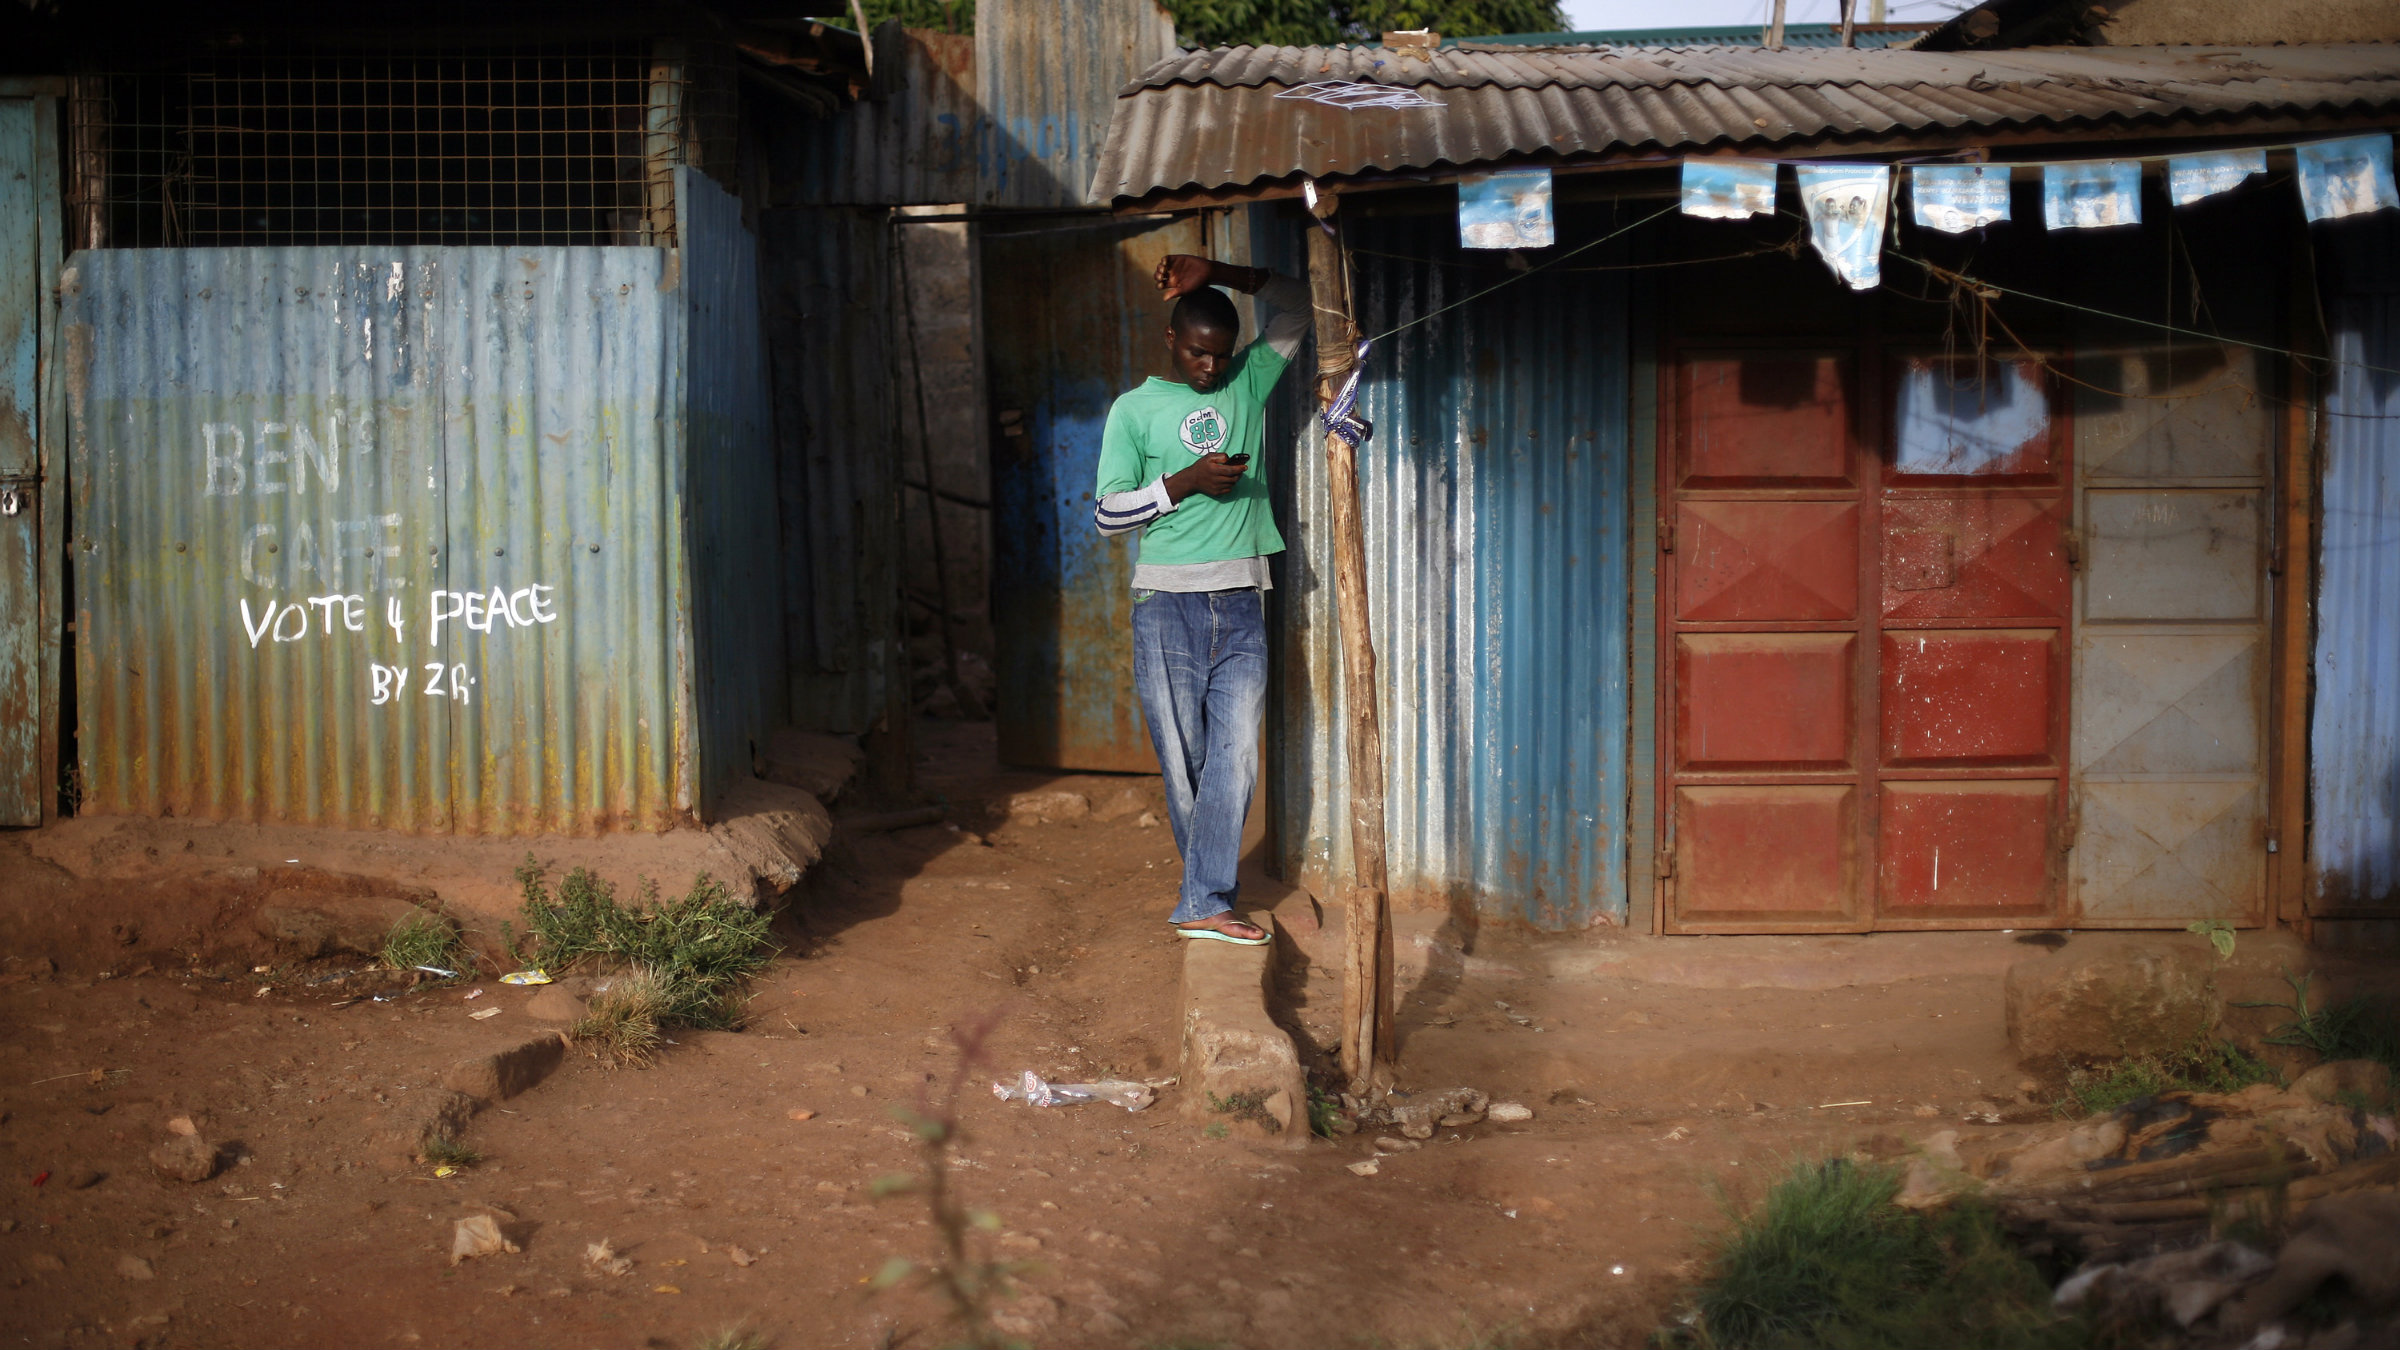 Kenyan man on mobile phone.